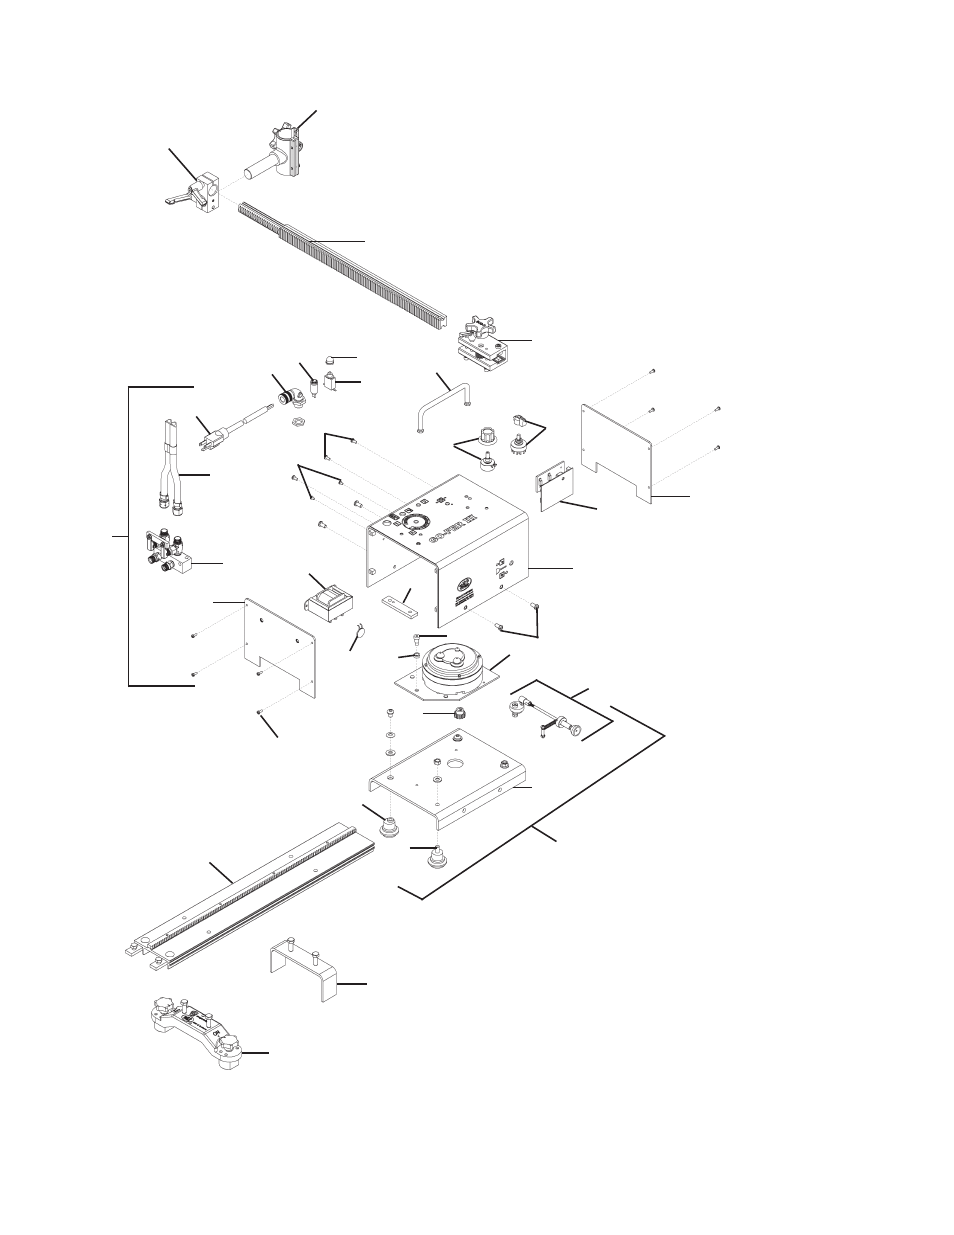 16.....gof-3240-ox / exploded view, Gof-3240-ox